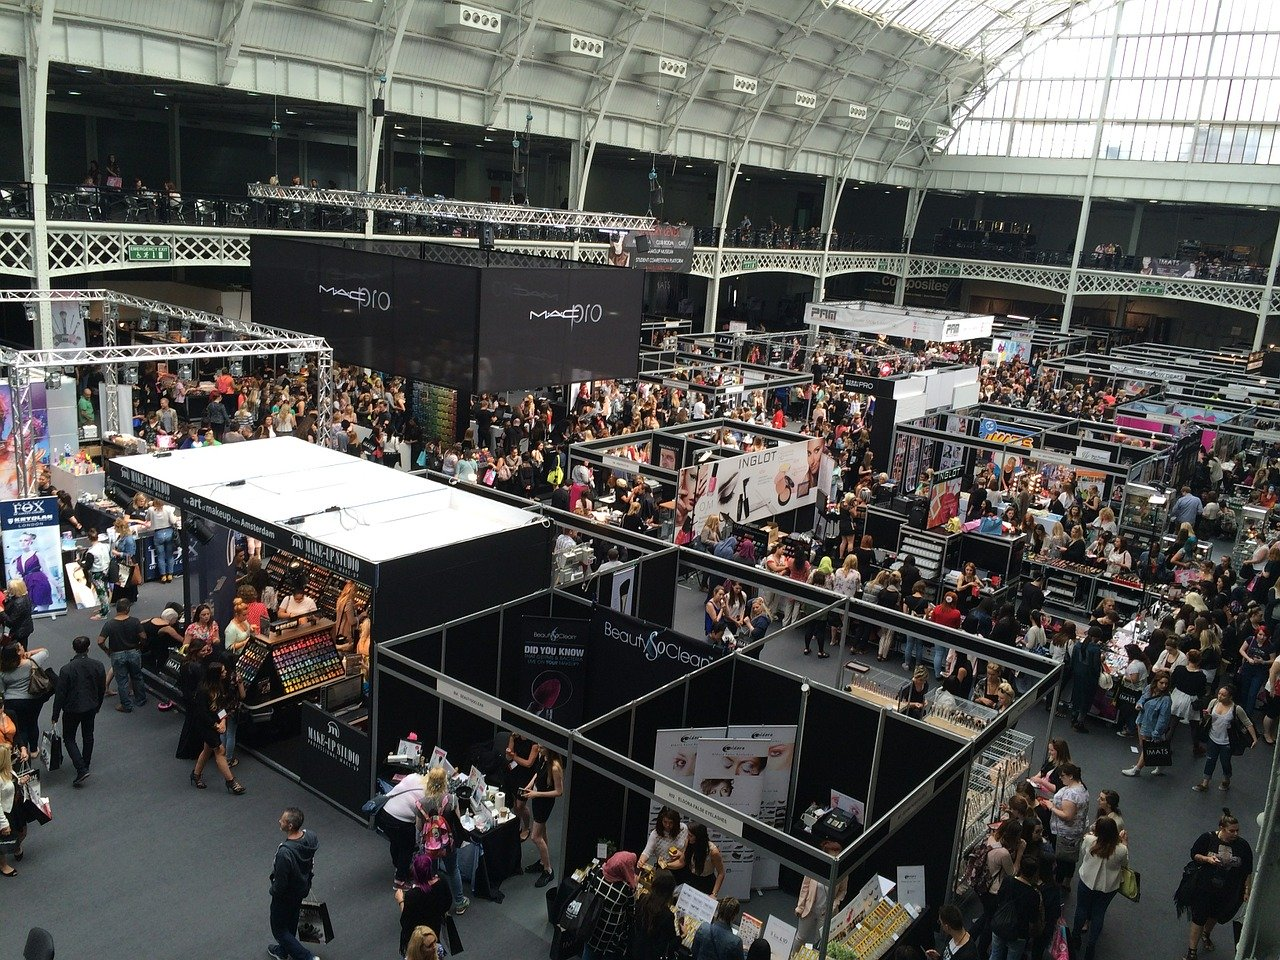 Benefits of exhibitions - business marketing